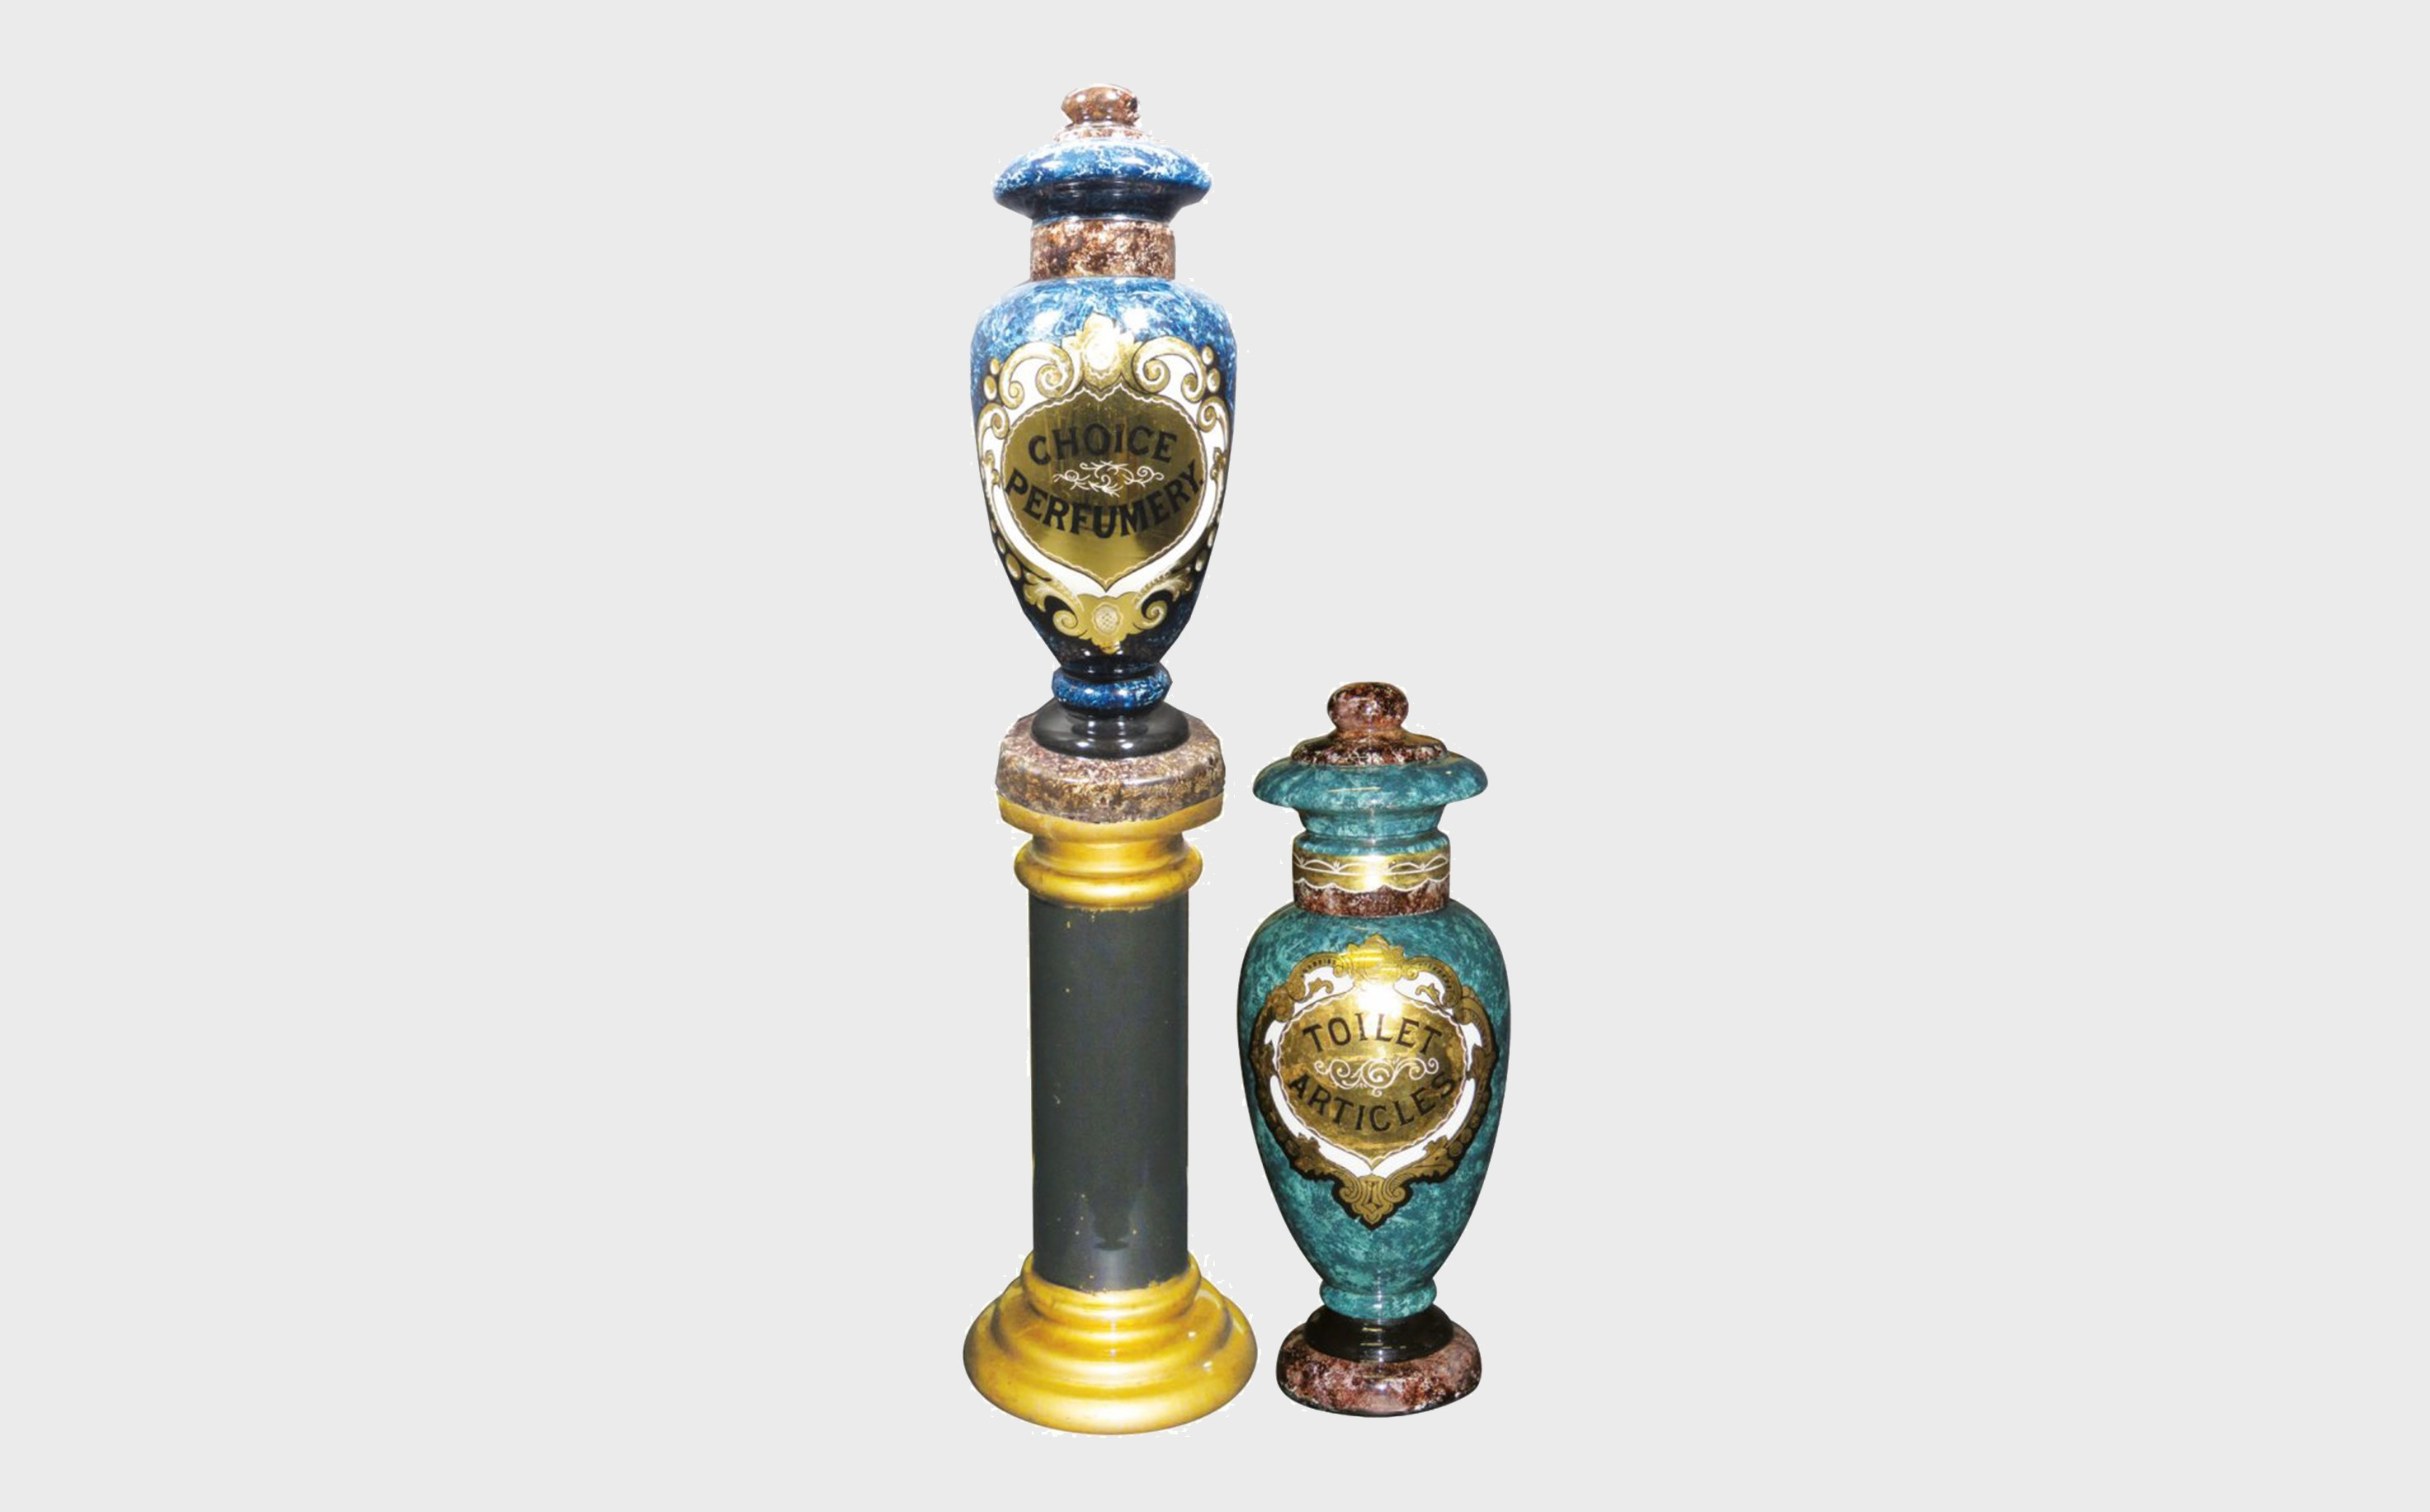 Two reverse Glass Show Globes